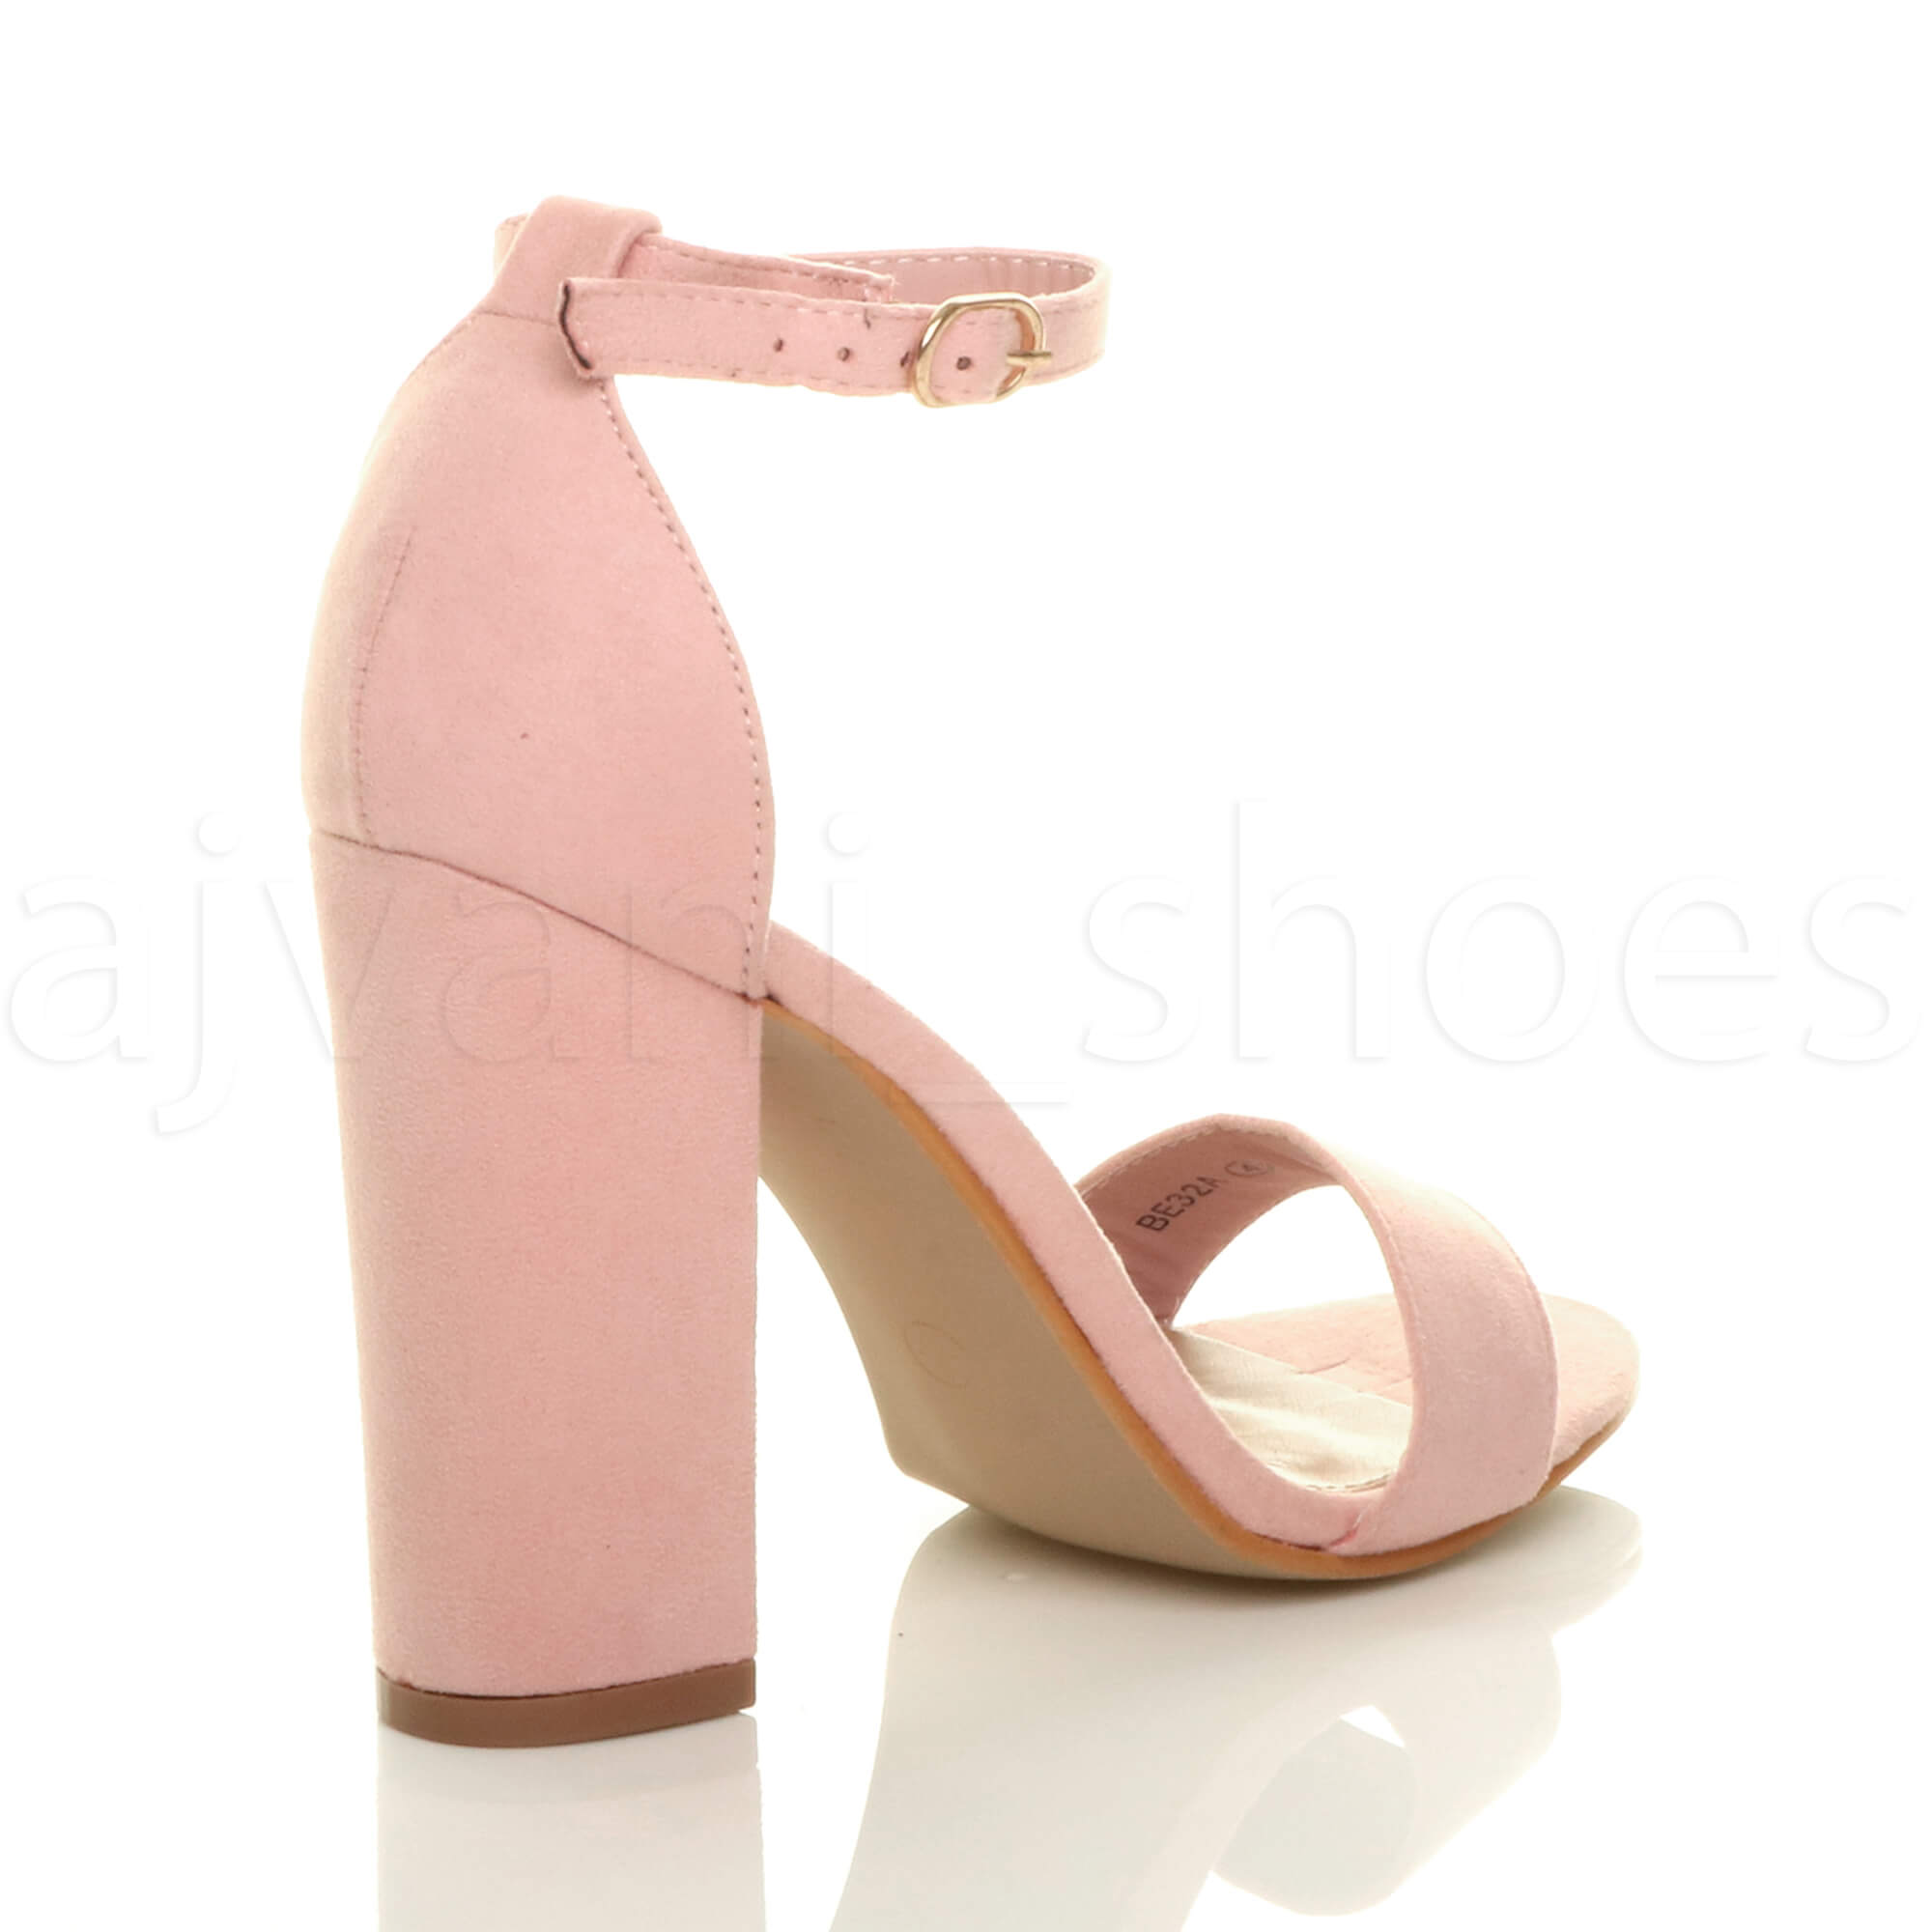 WOMENS-LADIES-BLOCK-HIGH-HEEL-ANKLE-STRAP-PEEP-TOE-STRAPPY-SANDALS-SHOES-SIZE thumbnail 105